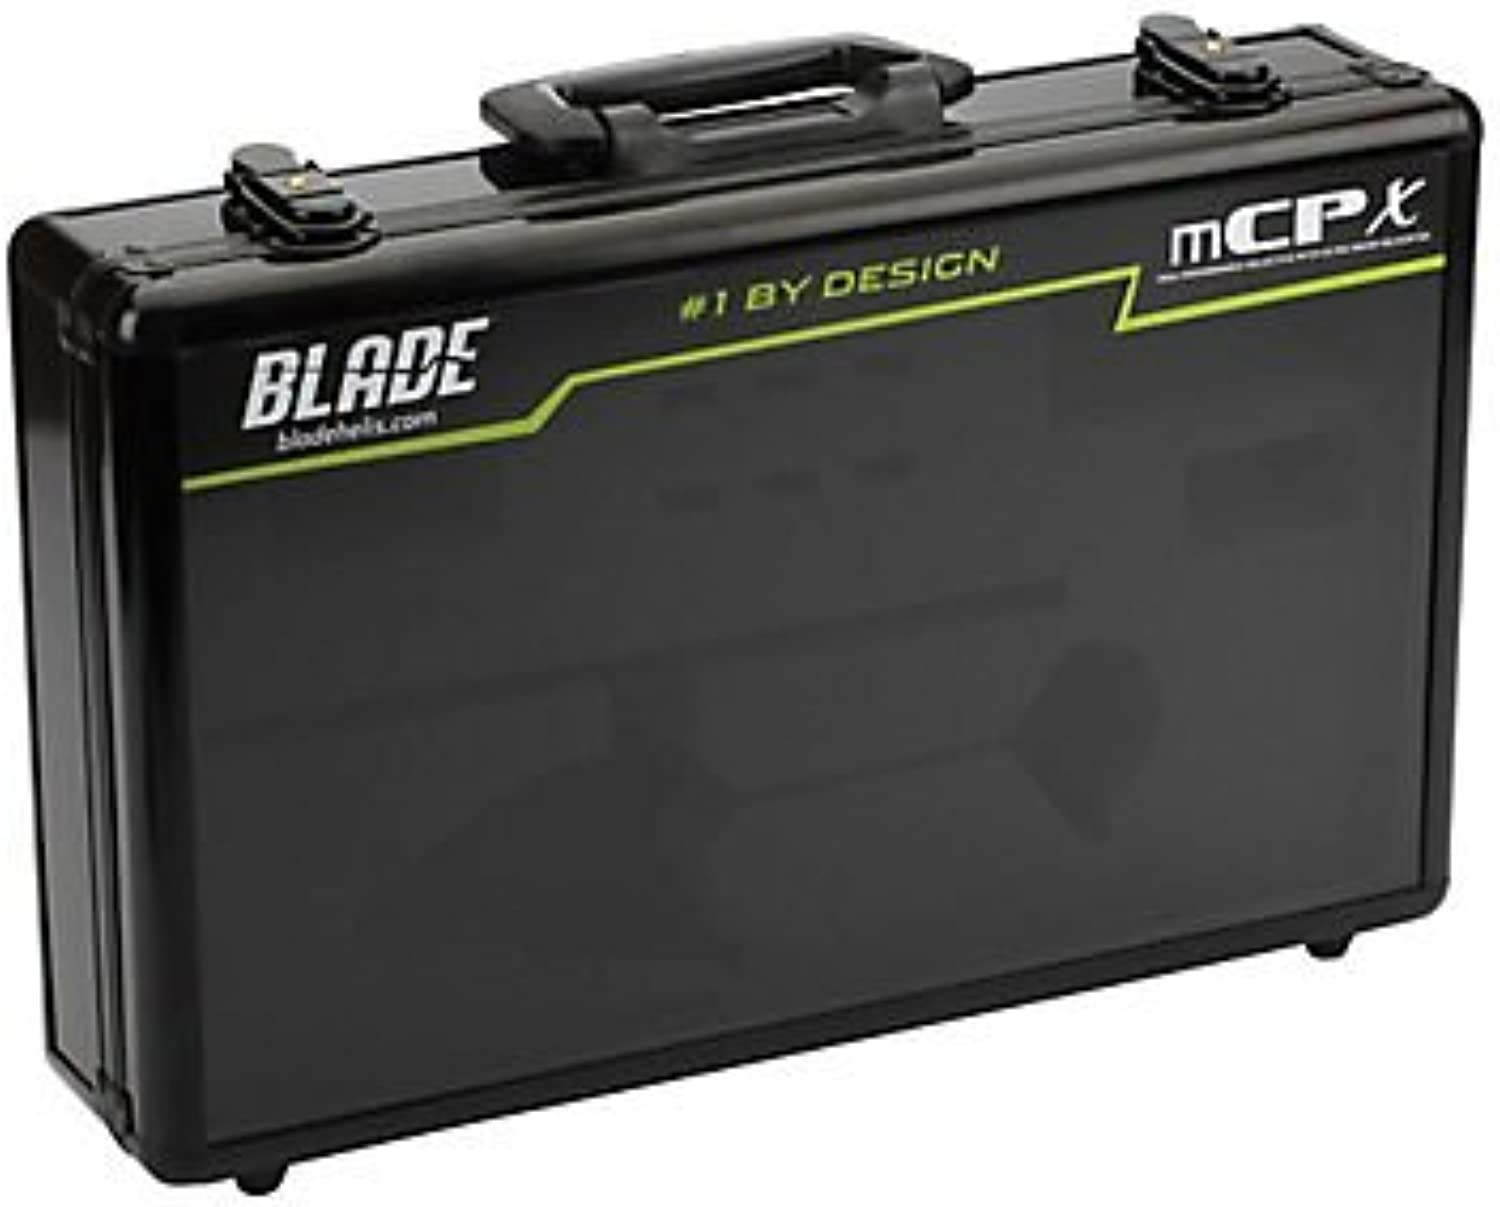 Blade mCP X Carry Case with Display Window